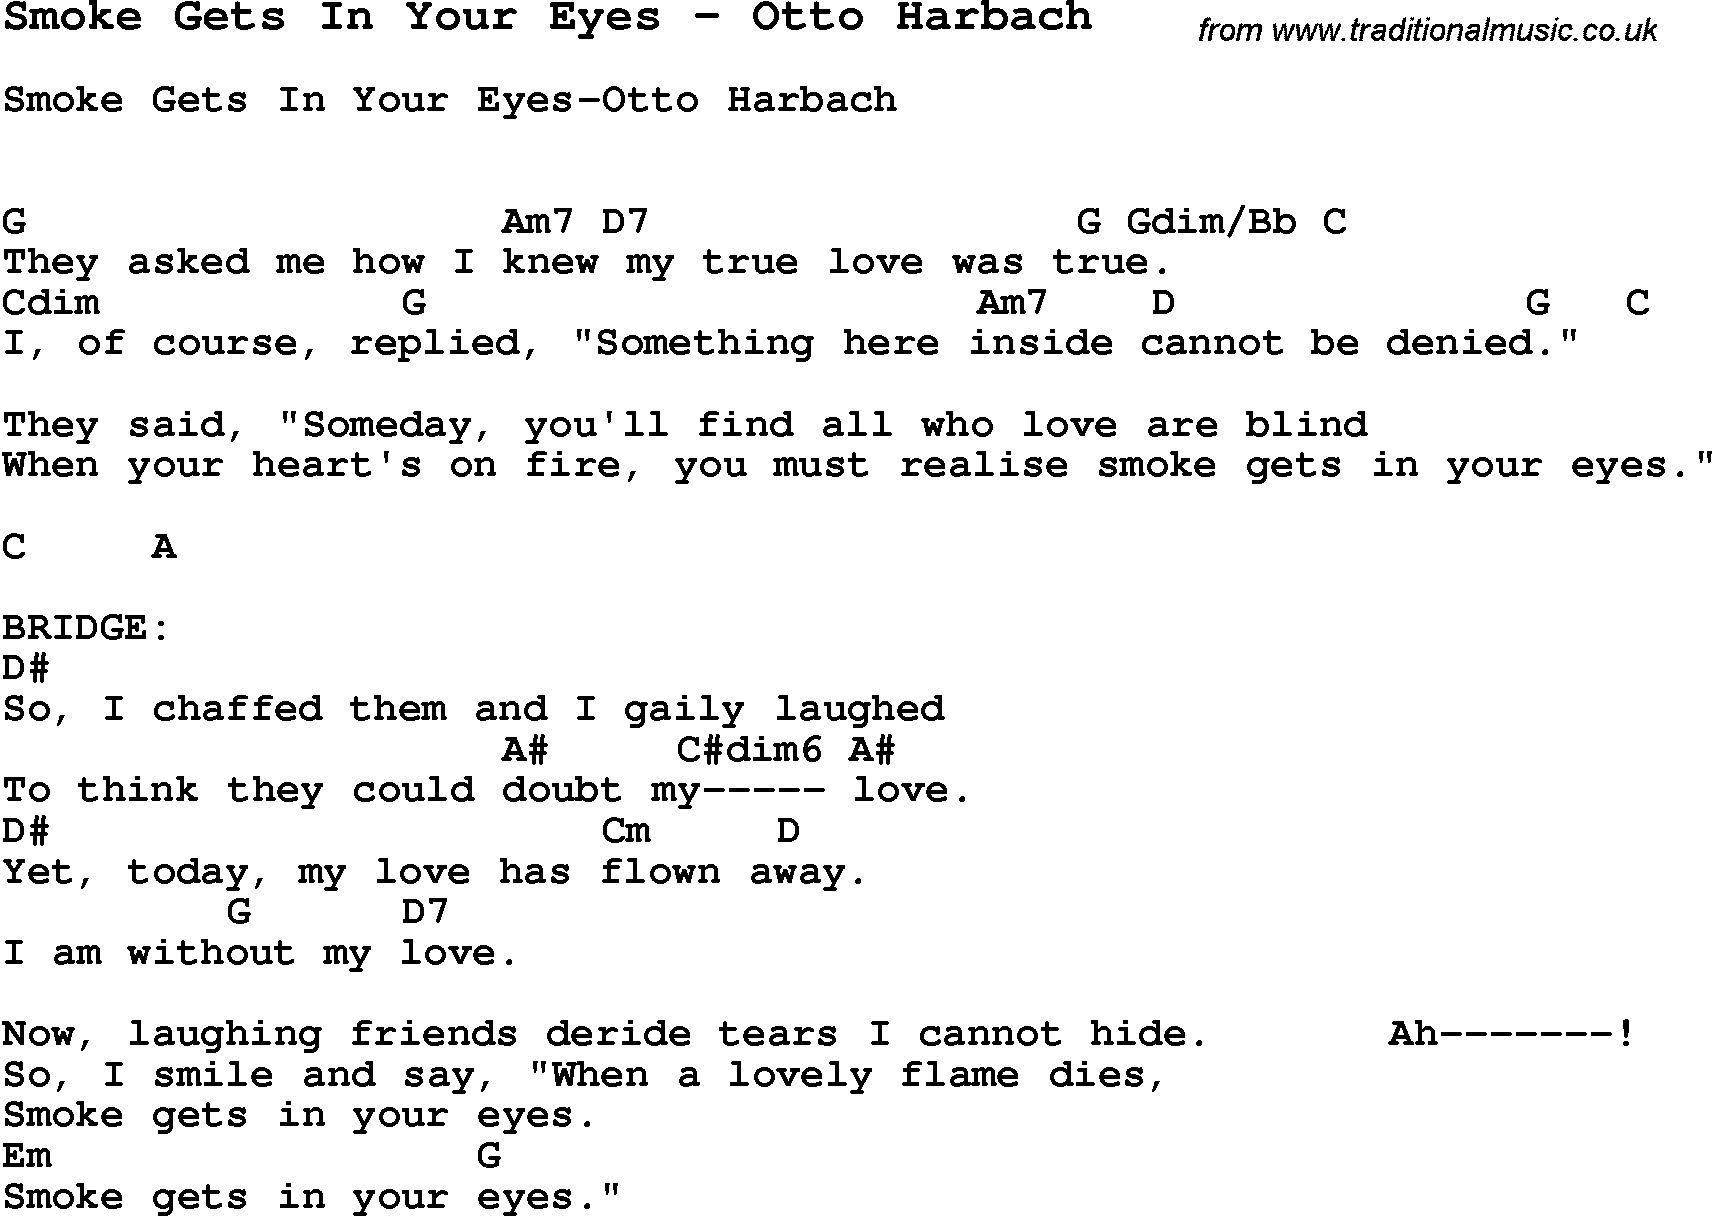 Song smoke gets in your eyes by otto harbach with lyrics for song smoke gets in your eyes by otto harbach song lyric for vocal performance plus accompaniment chords for ukulele guitar banjo etc hexwebz Images